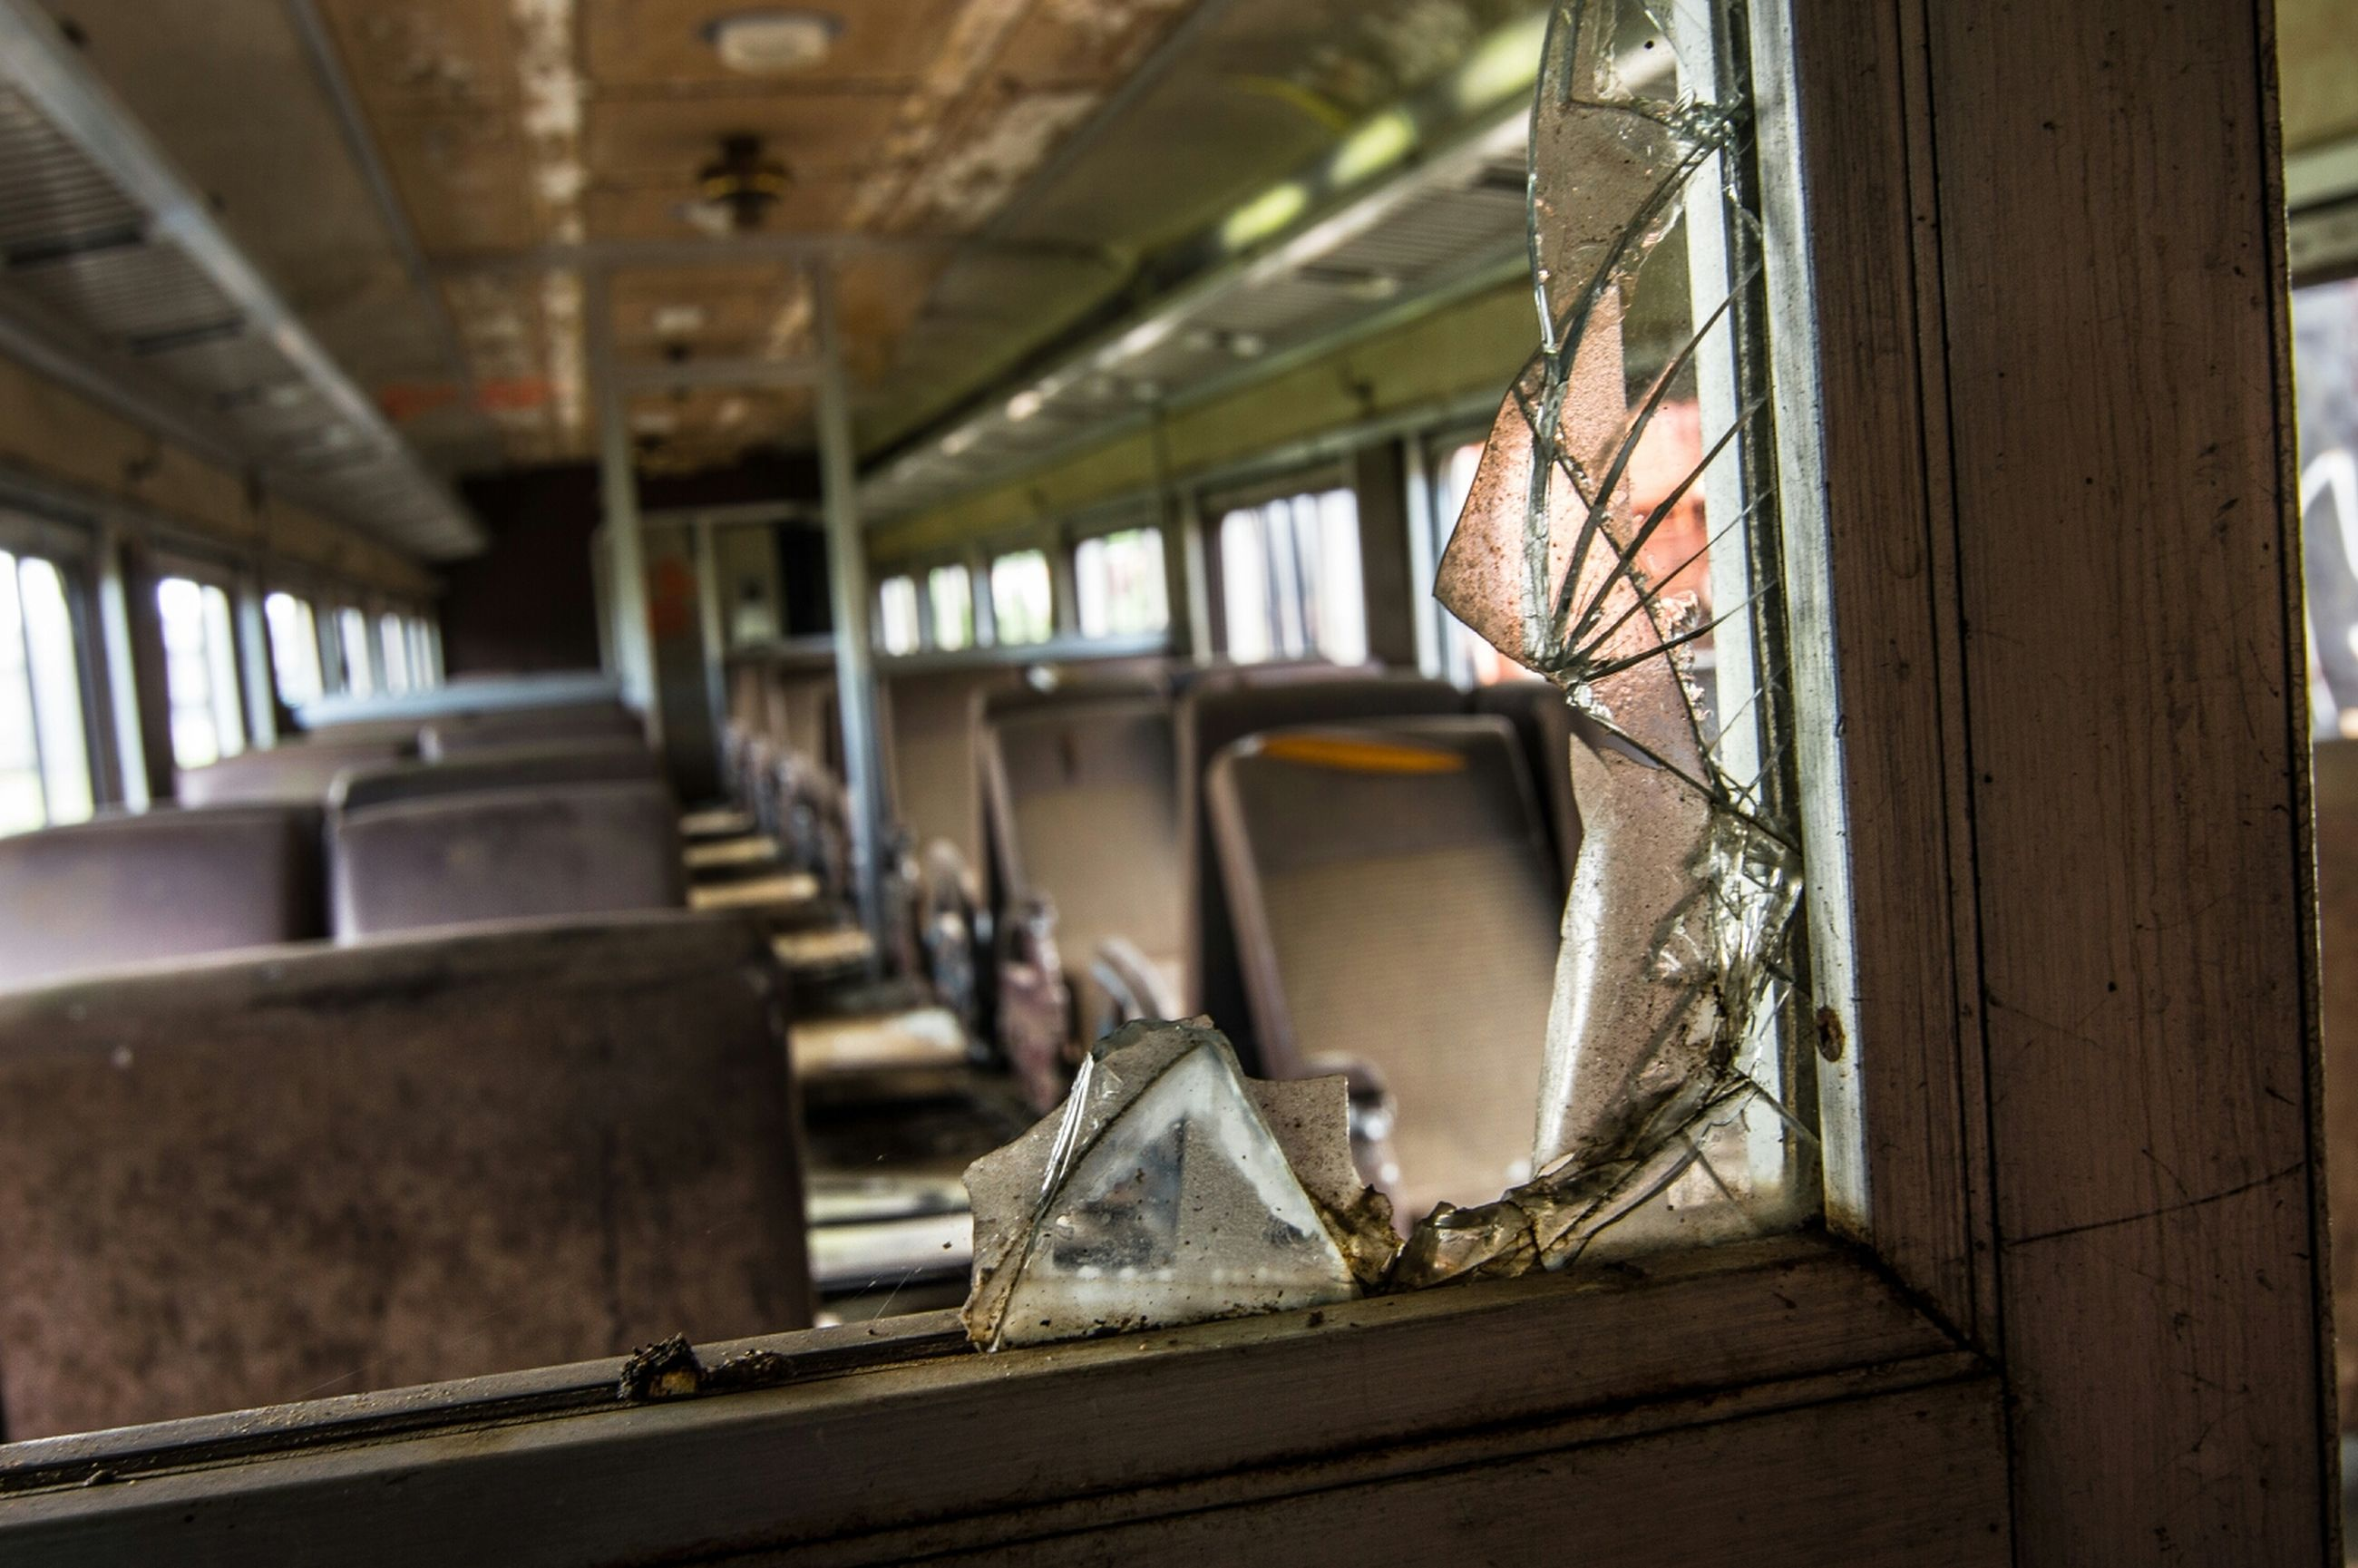 indoors, absence, public transportation, transportation, window, architecture, rail transportation, empty, interior, built structure, no people, train - vehicle, railroad track, reflection, table, illuminated, day, vehicle seat, chair, passenger train